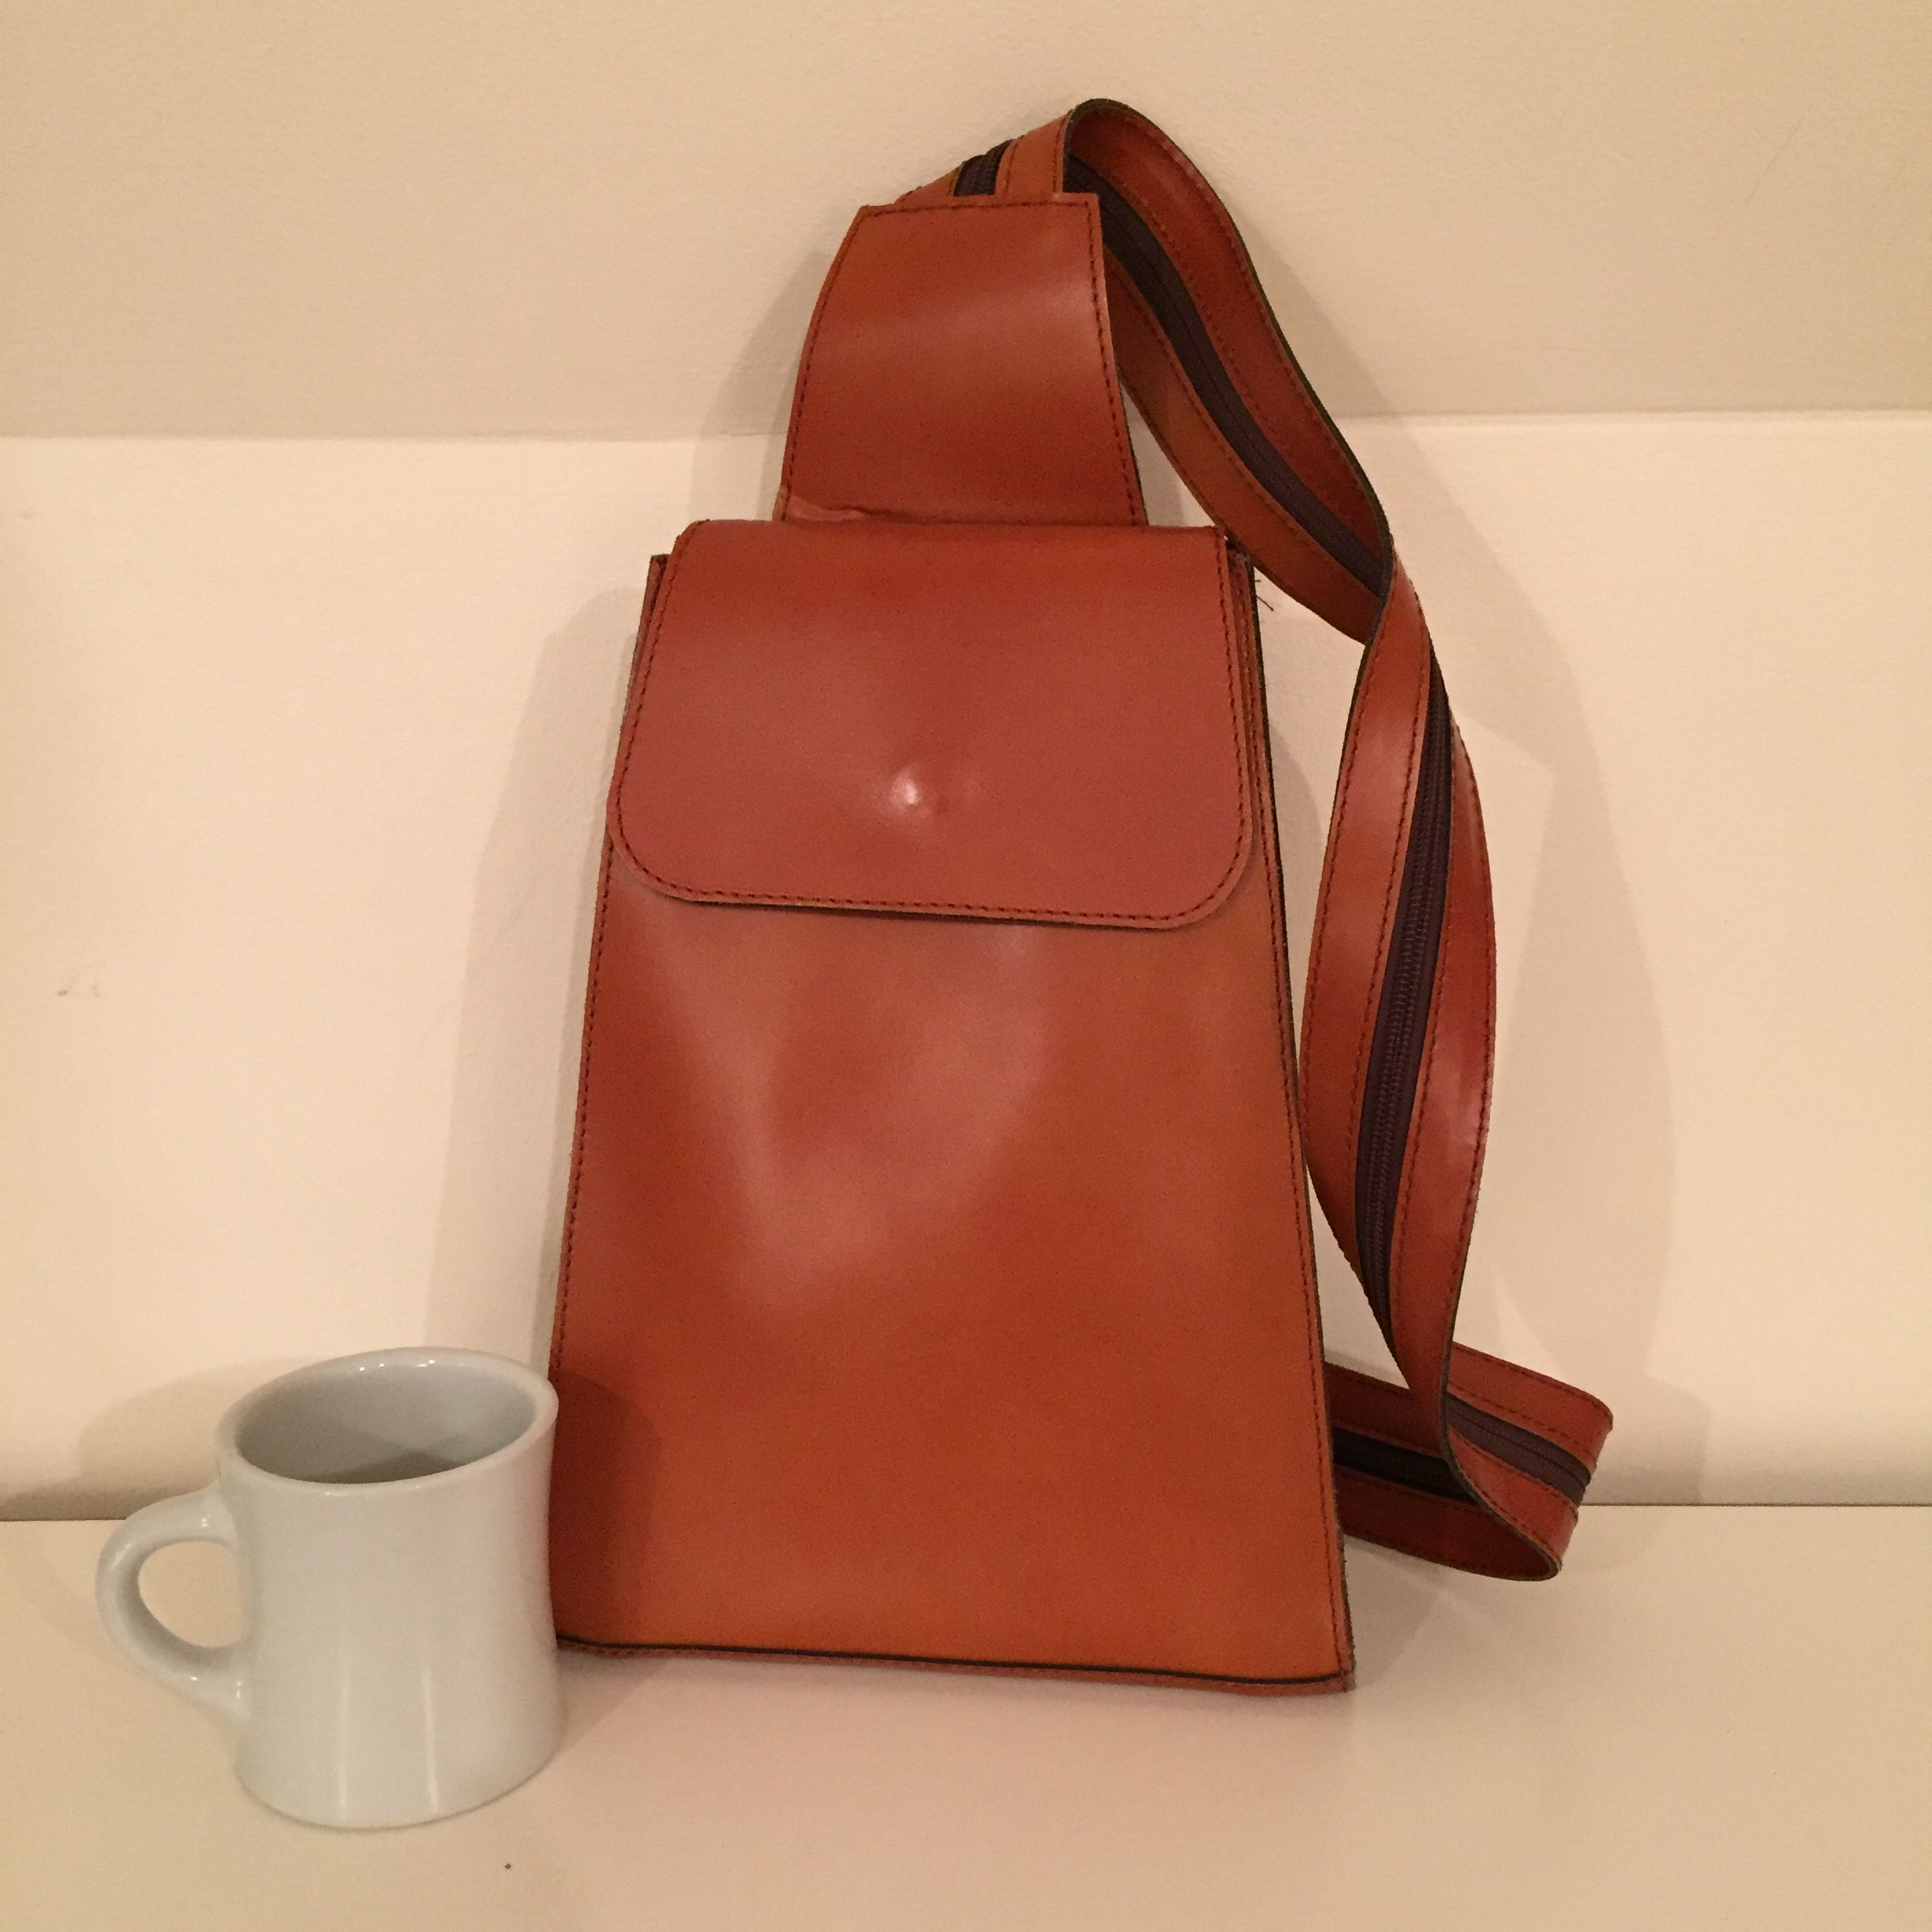 19582e789e0 Minimalist leather backpack from spain gift from parents bags jpg 2448x2448  Backpacks from spain